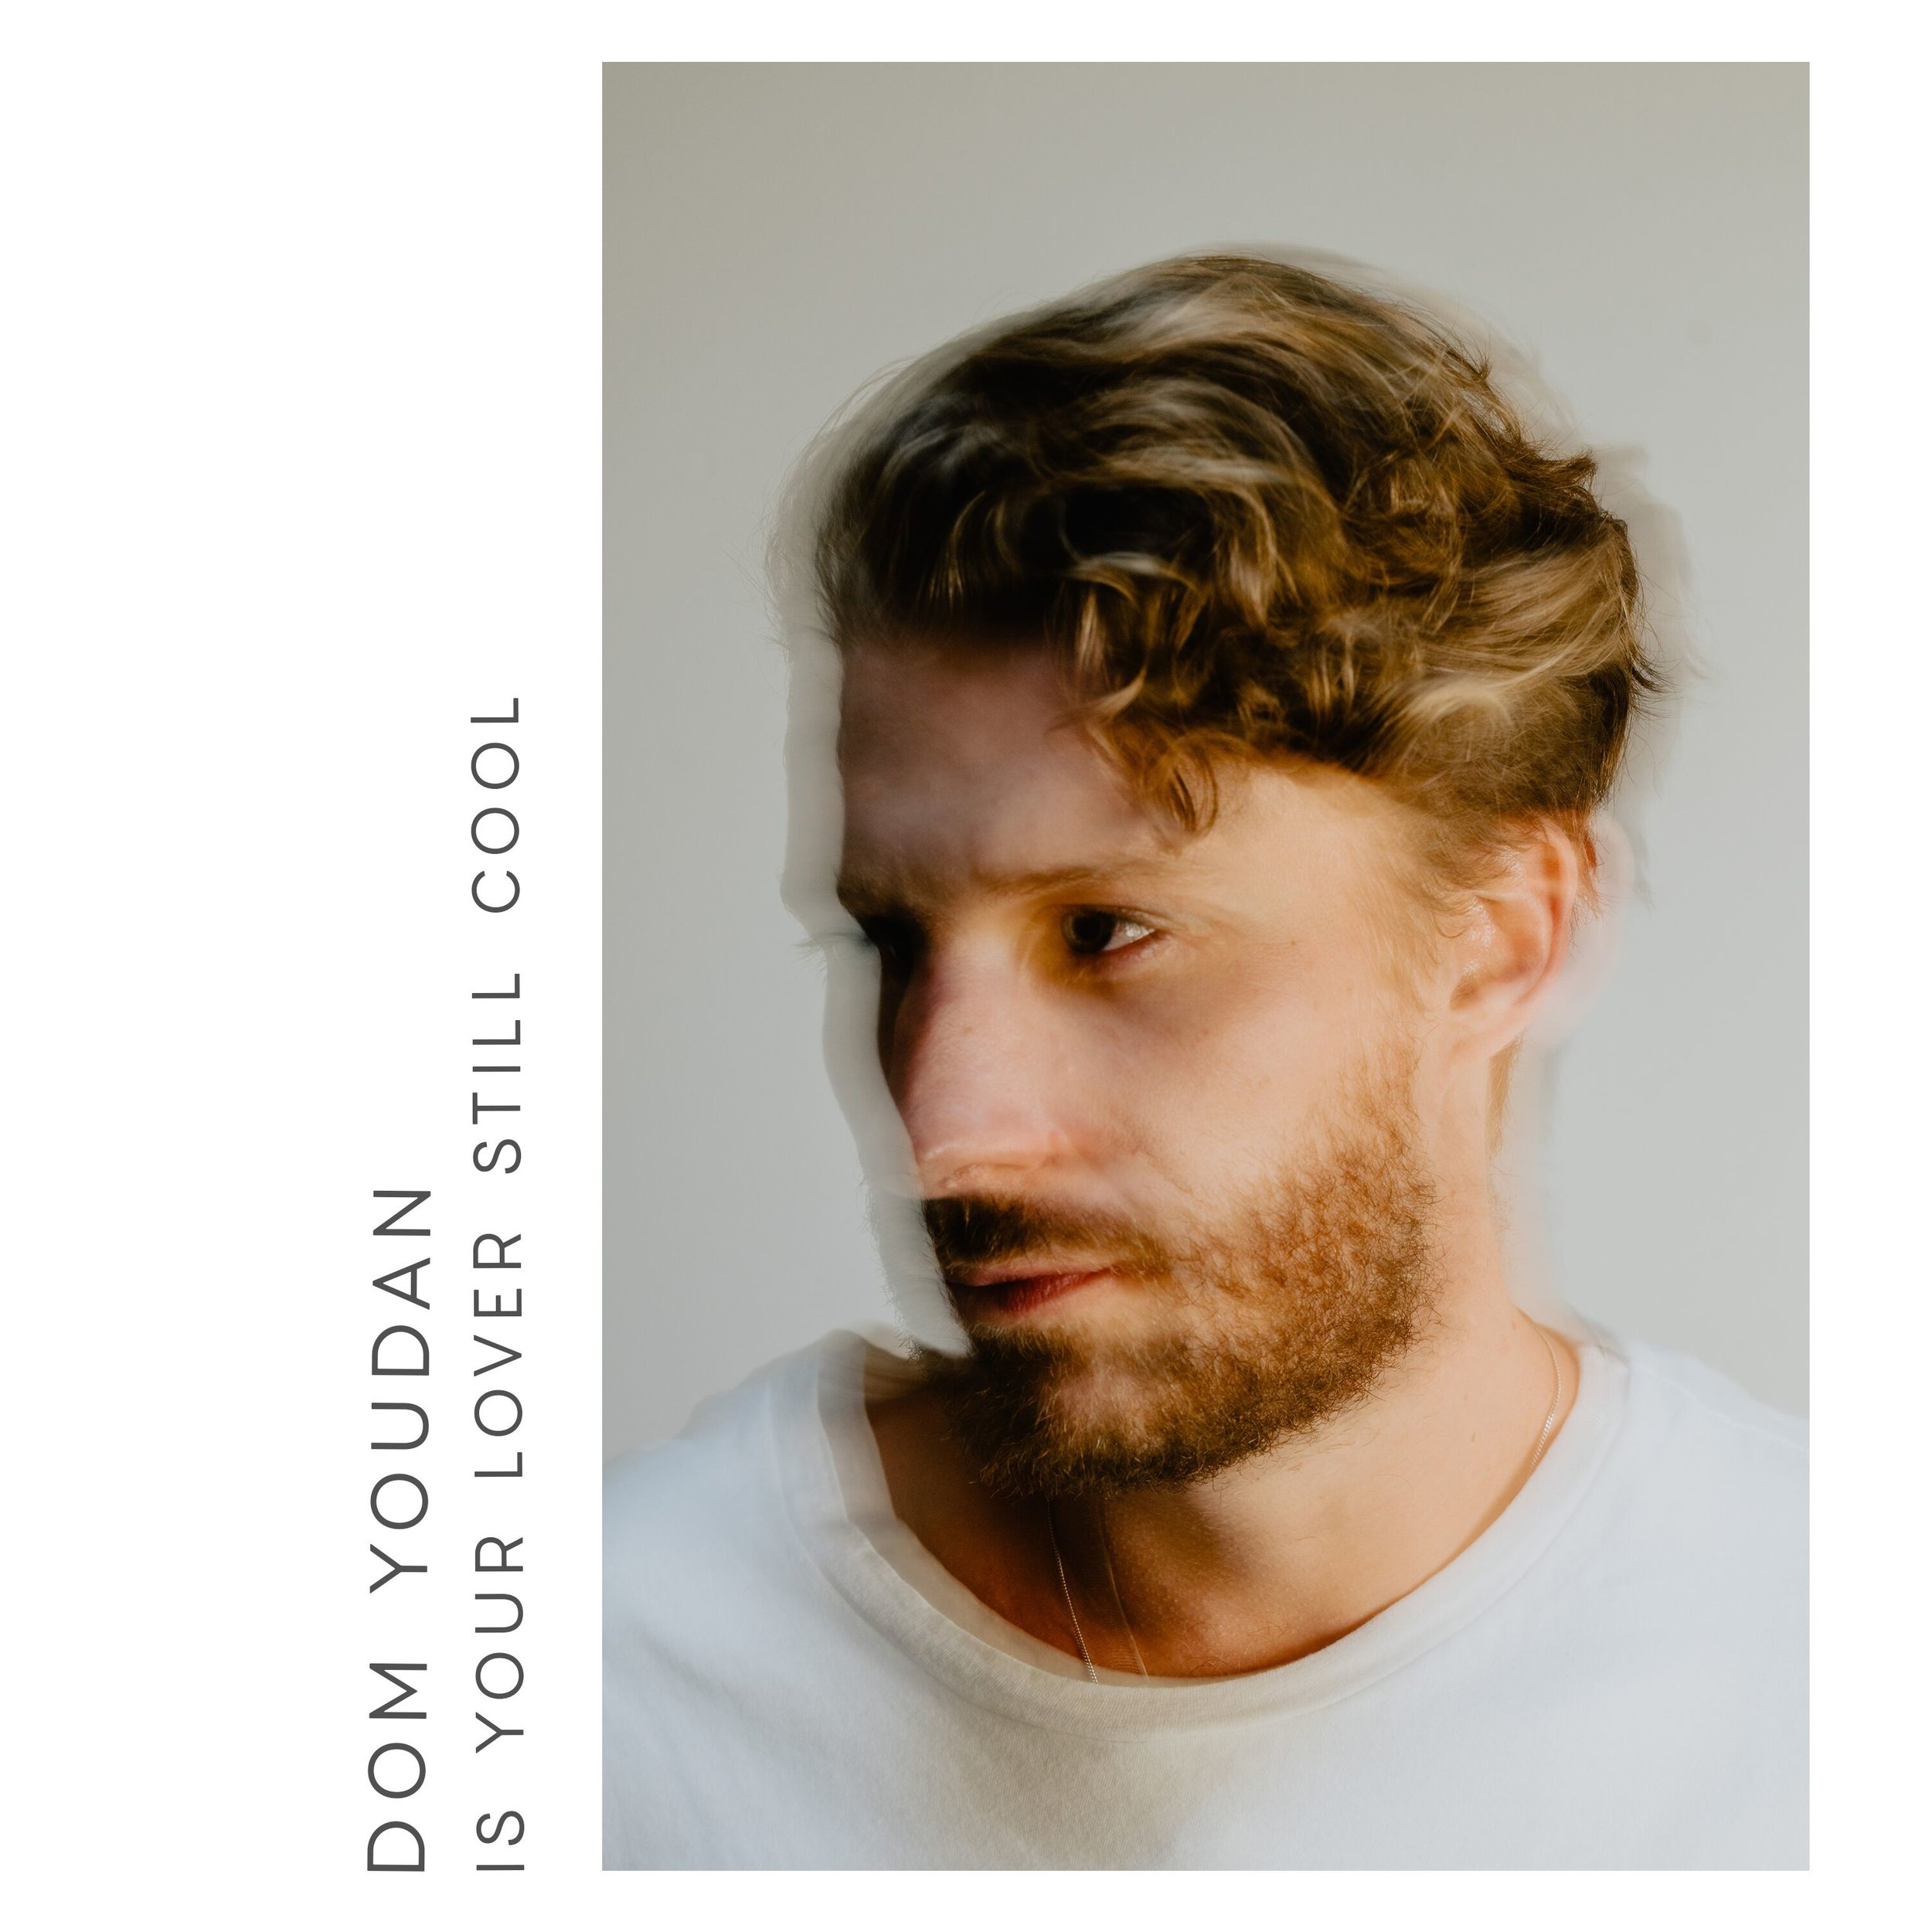 DOM YOUDAN, 17/05/2019 - IS YOUR LOVER STILL COOL?